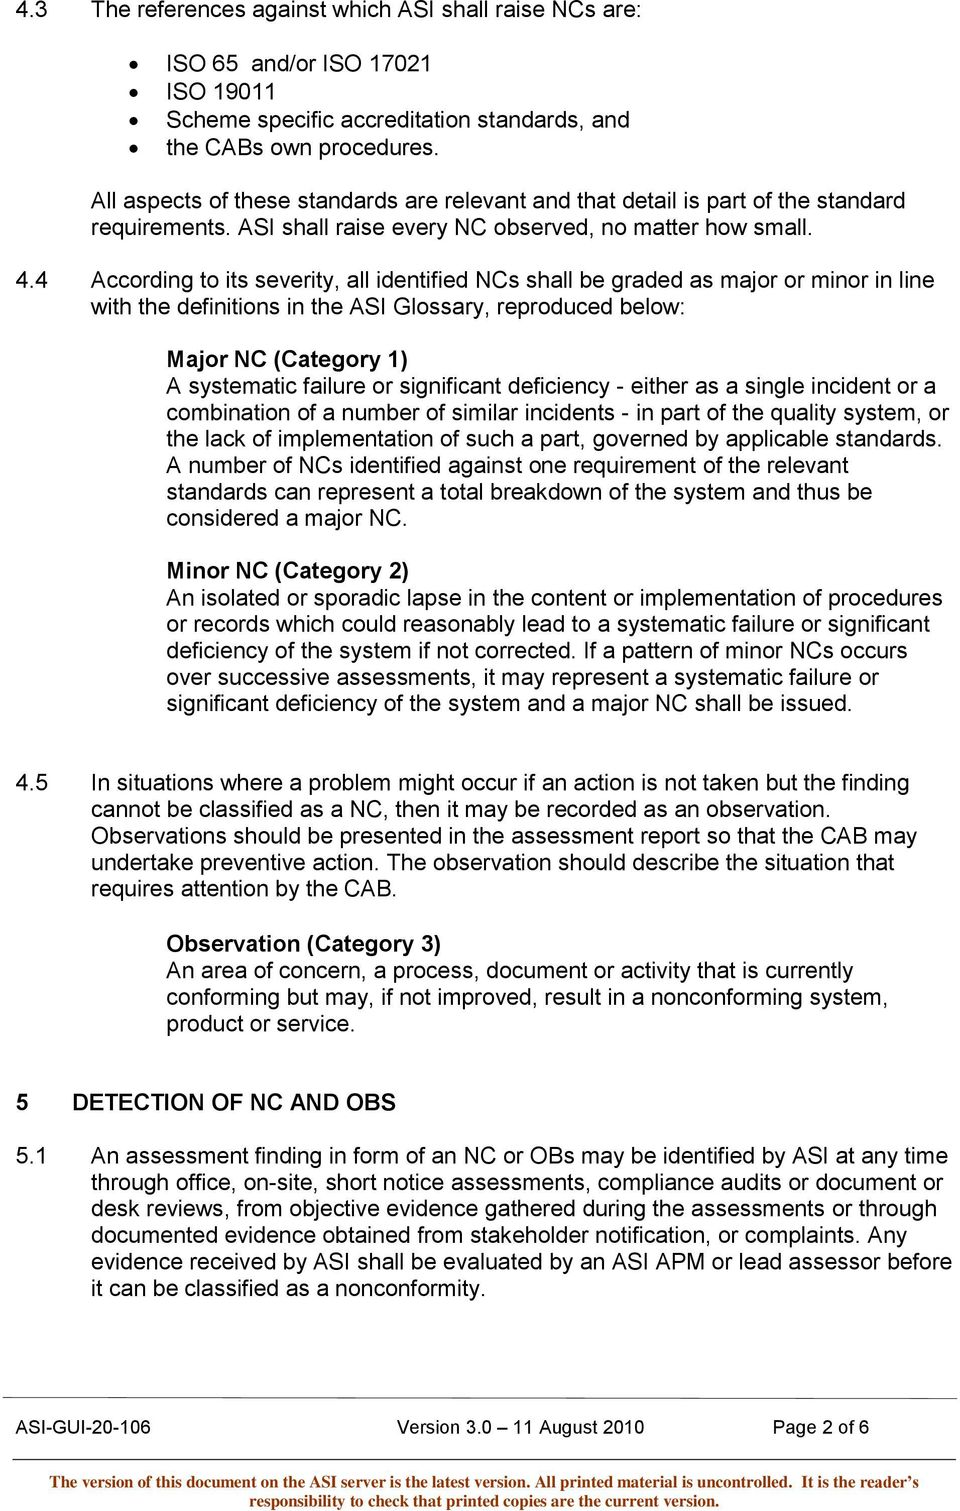 4 According to its severity, all identified NCs shall be graded as major or minor in line with the definitions in the ASI Glossary, reproduced below: Major NC (Category 1) A systematic failure or